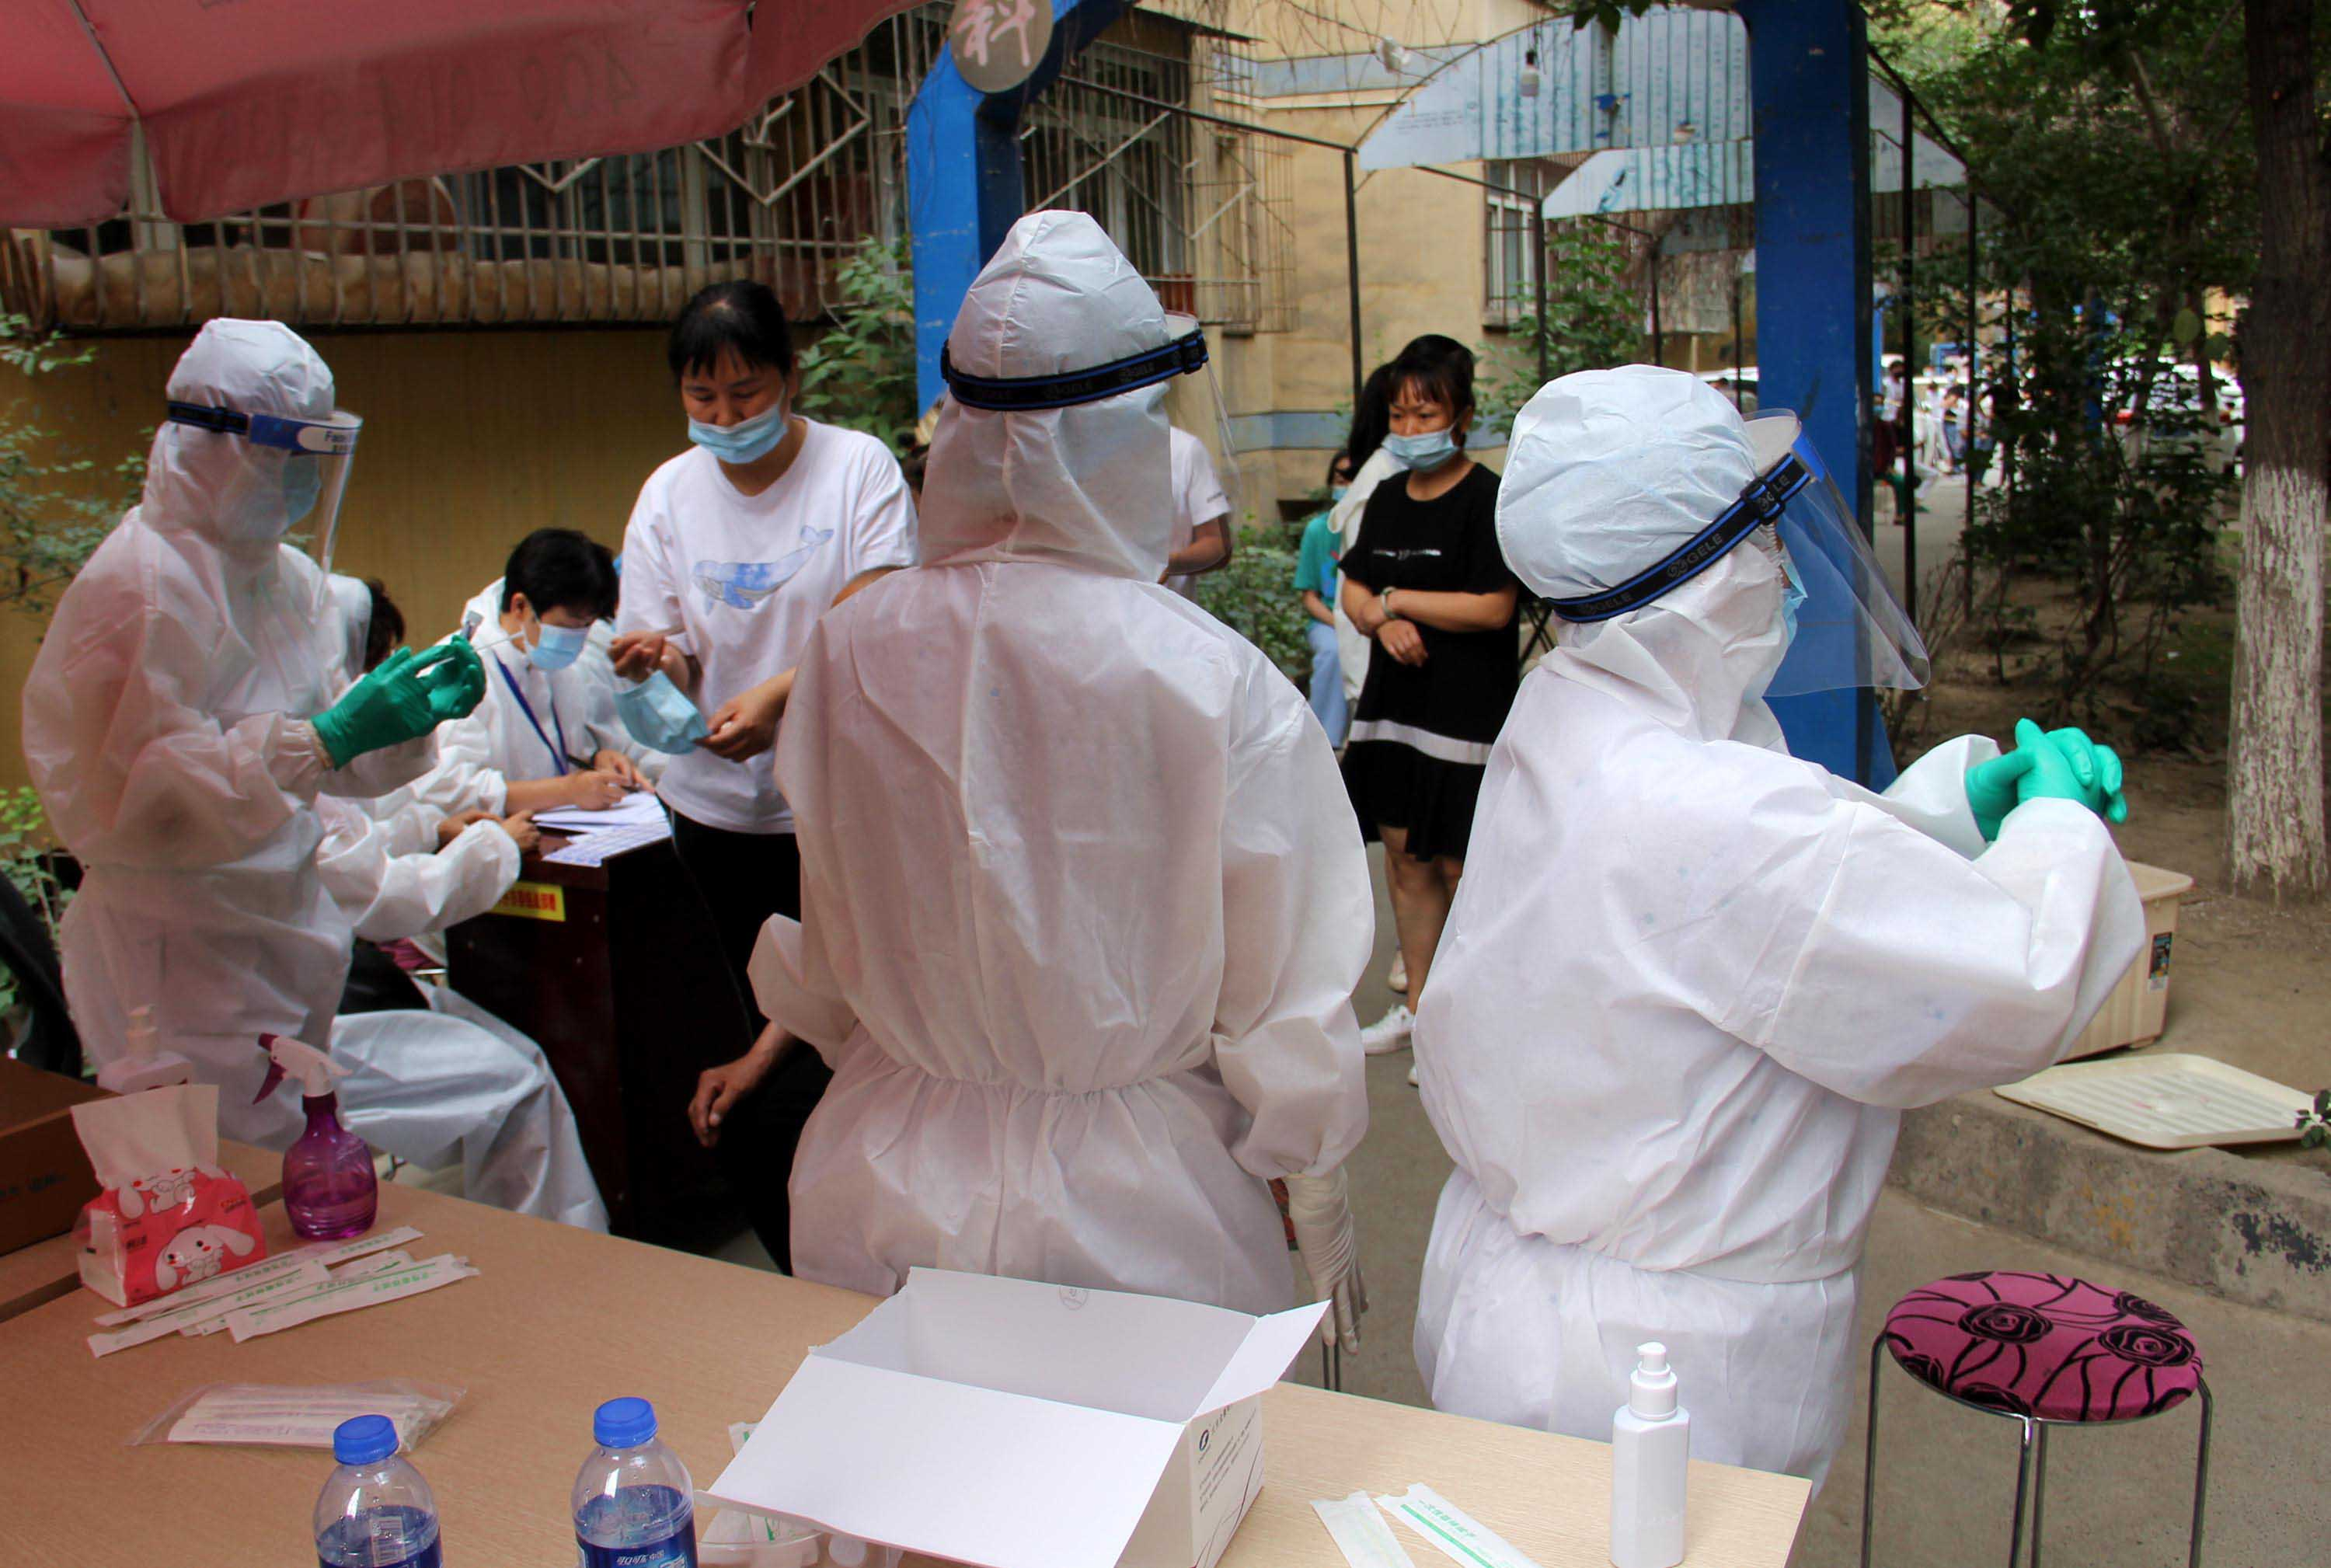 Residents undergo nucleic acid testing in Urumqi, in the Xinjiang Uyghur Autonomous Region of China, on July 19.